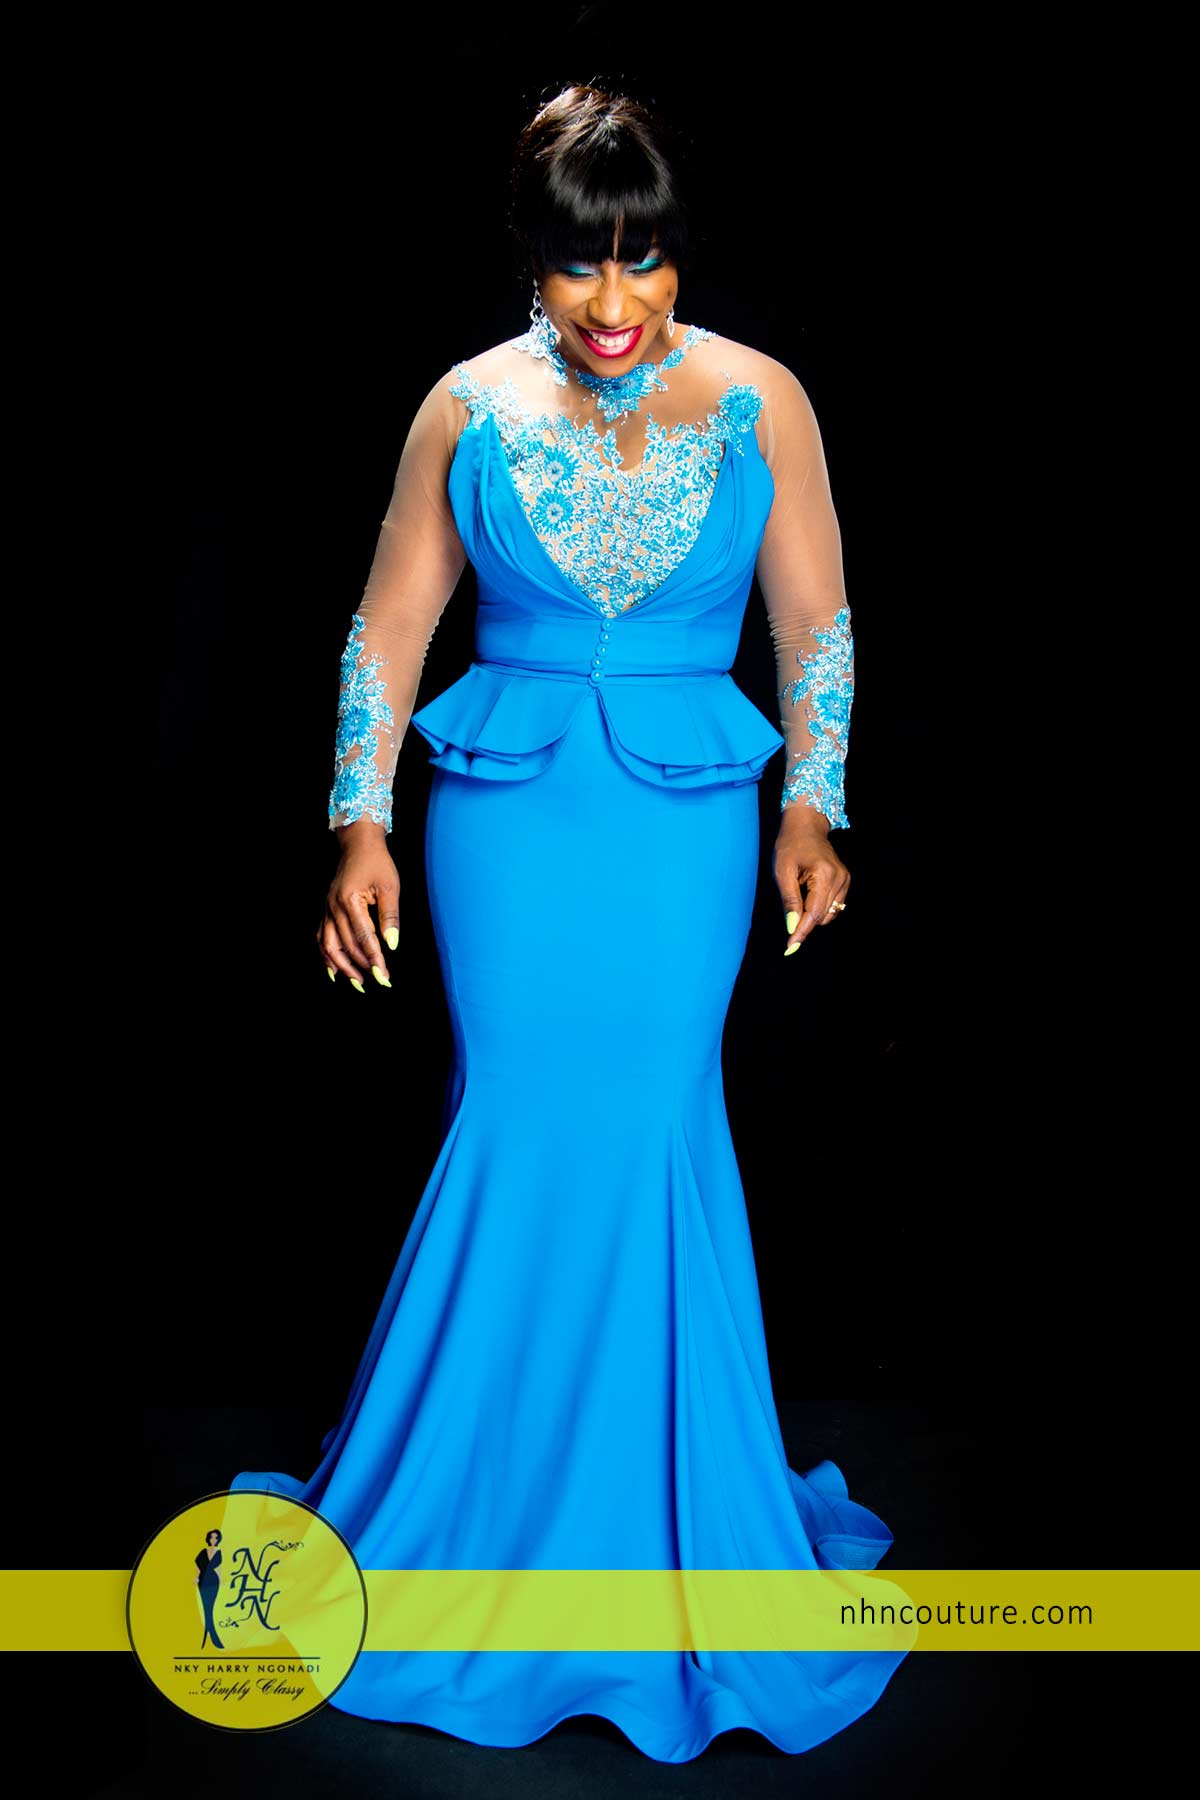 NHN Couture Fouad Sarkis Collection Nigeria